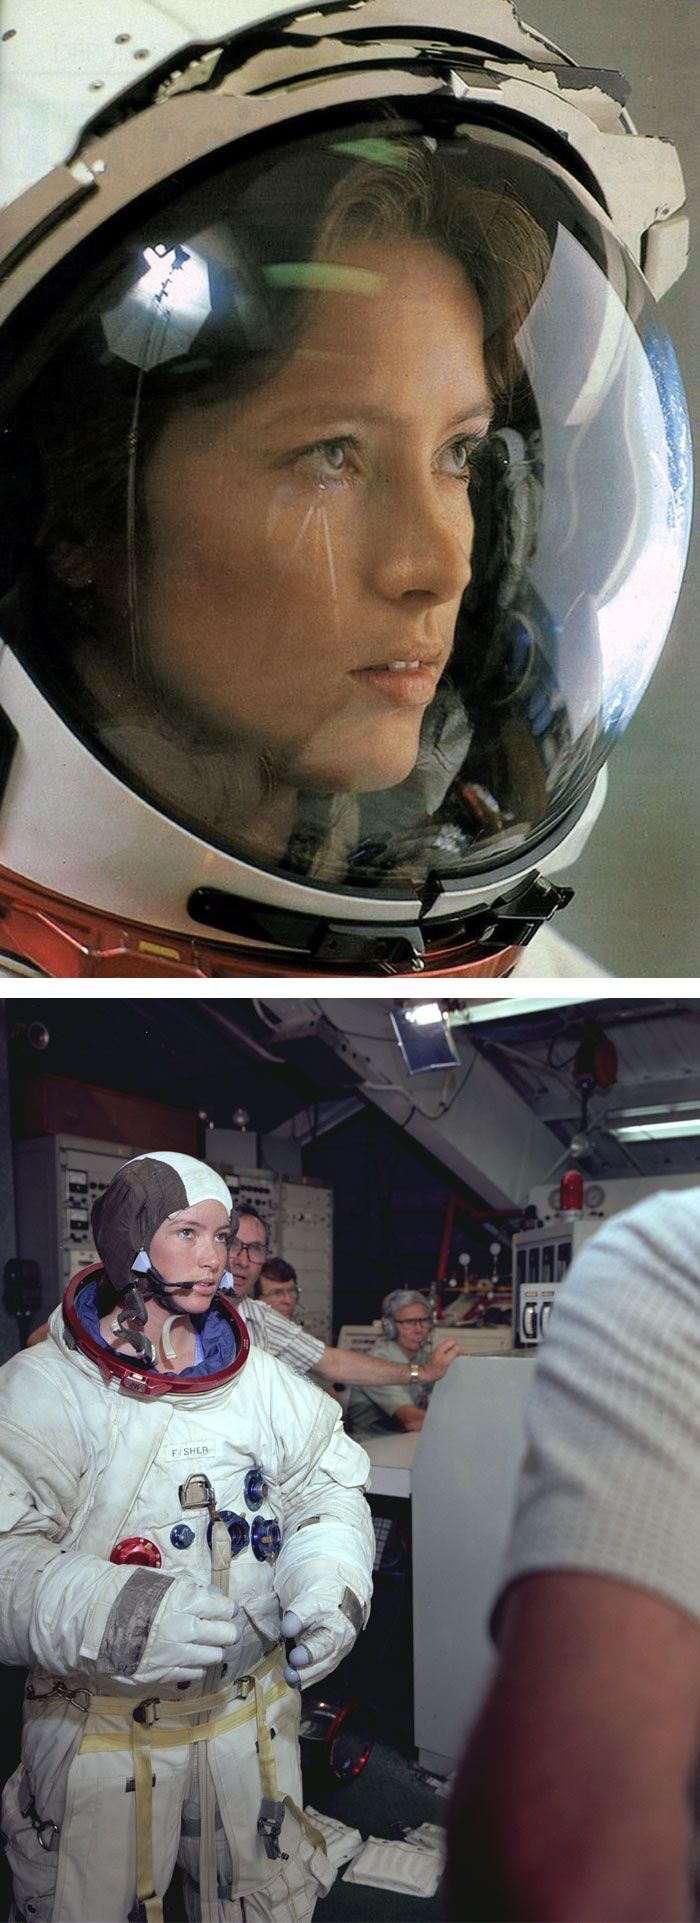 NASA Astronaut Anna Lee Fisher Became The First Mother In Space (1984)